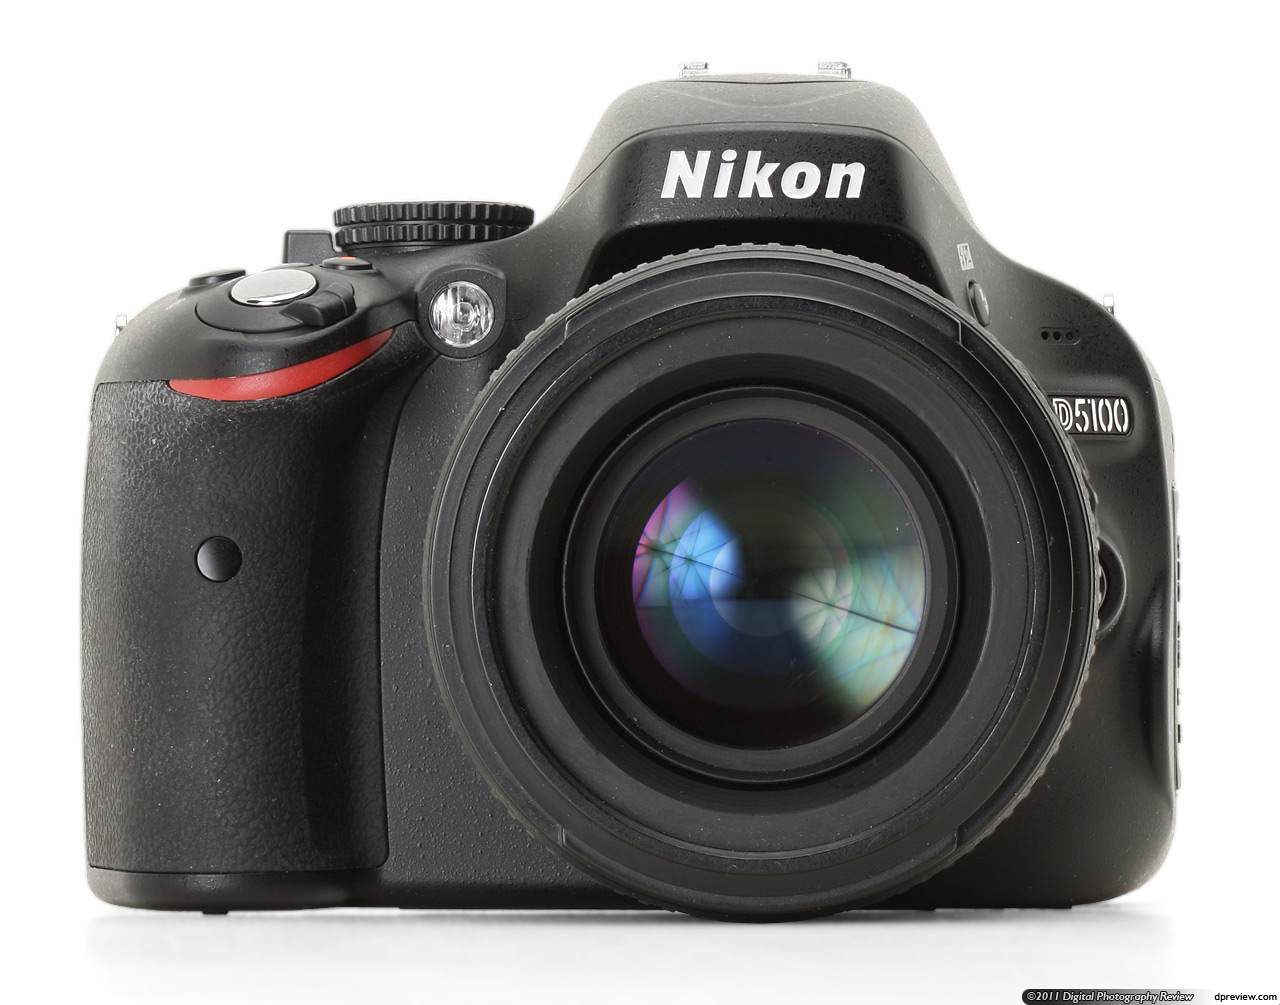 Reflex Camera Nikon D5100 Kit: review, features, reviews 8